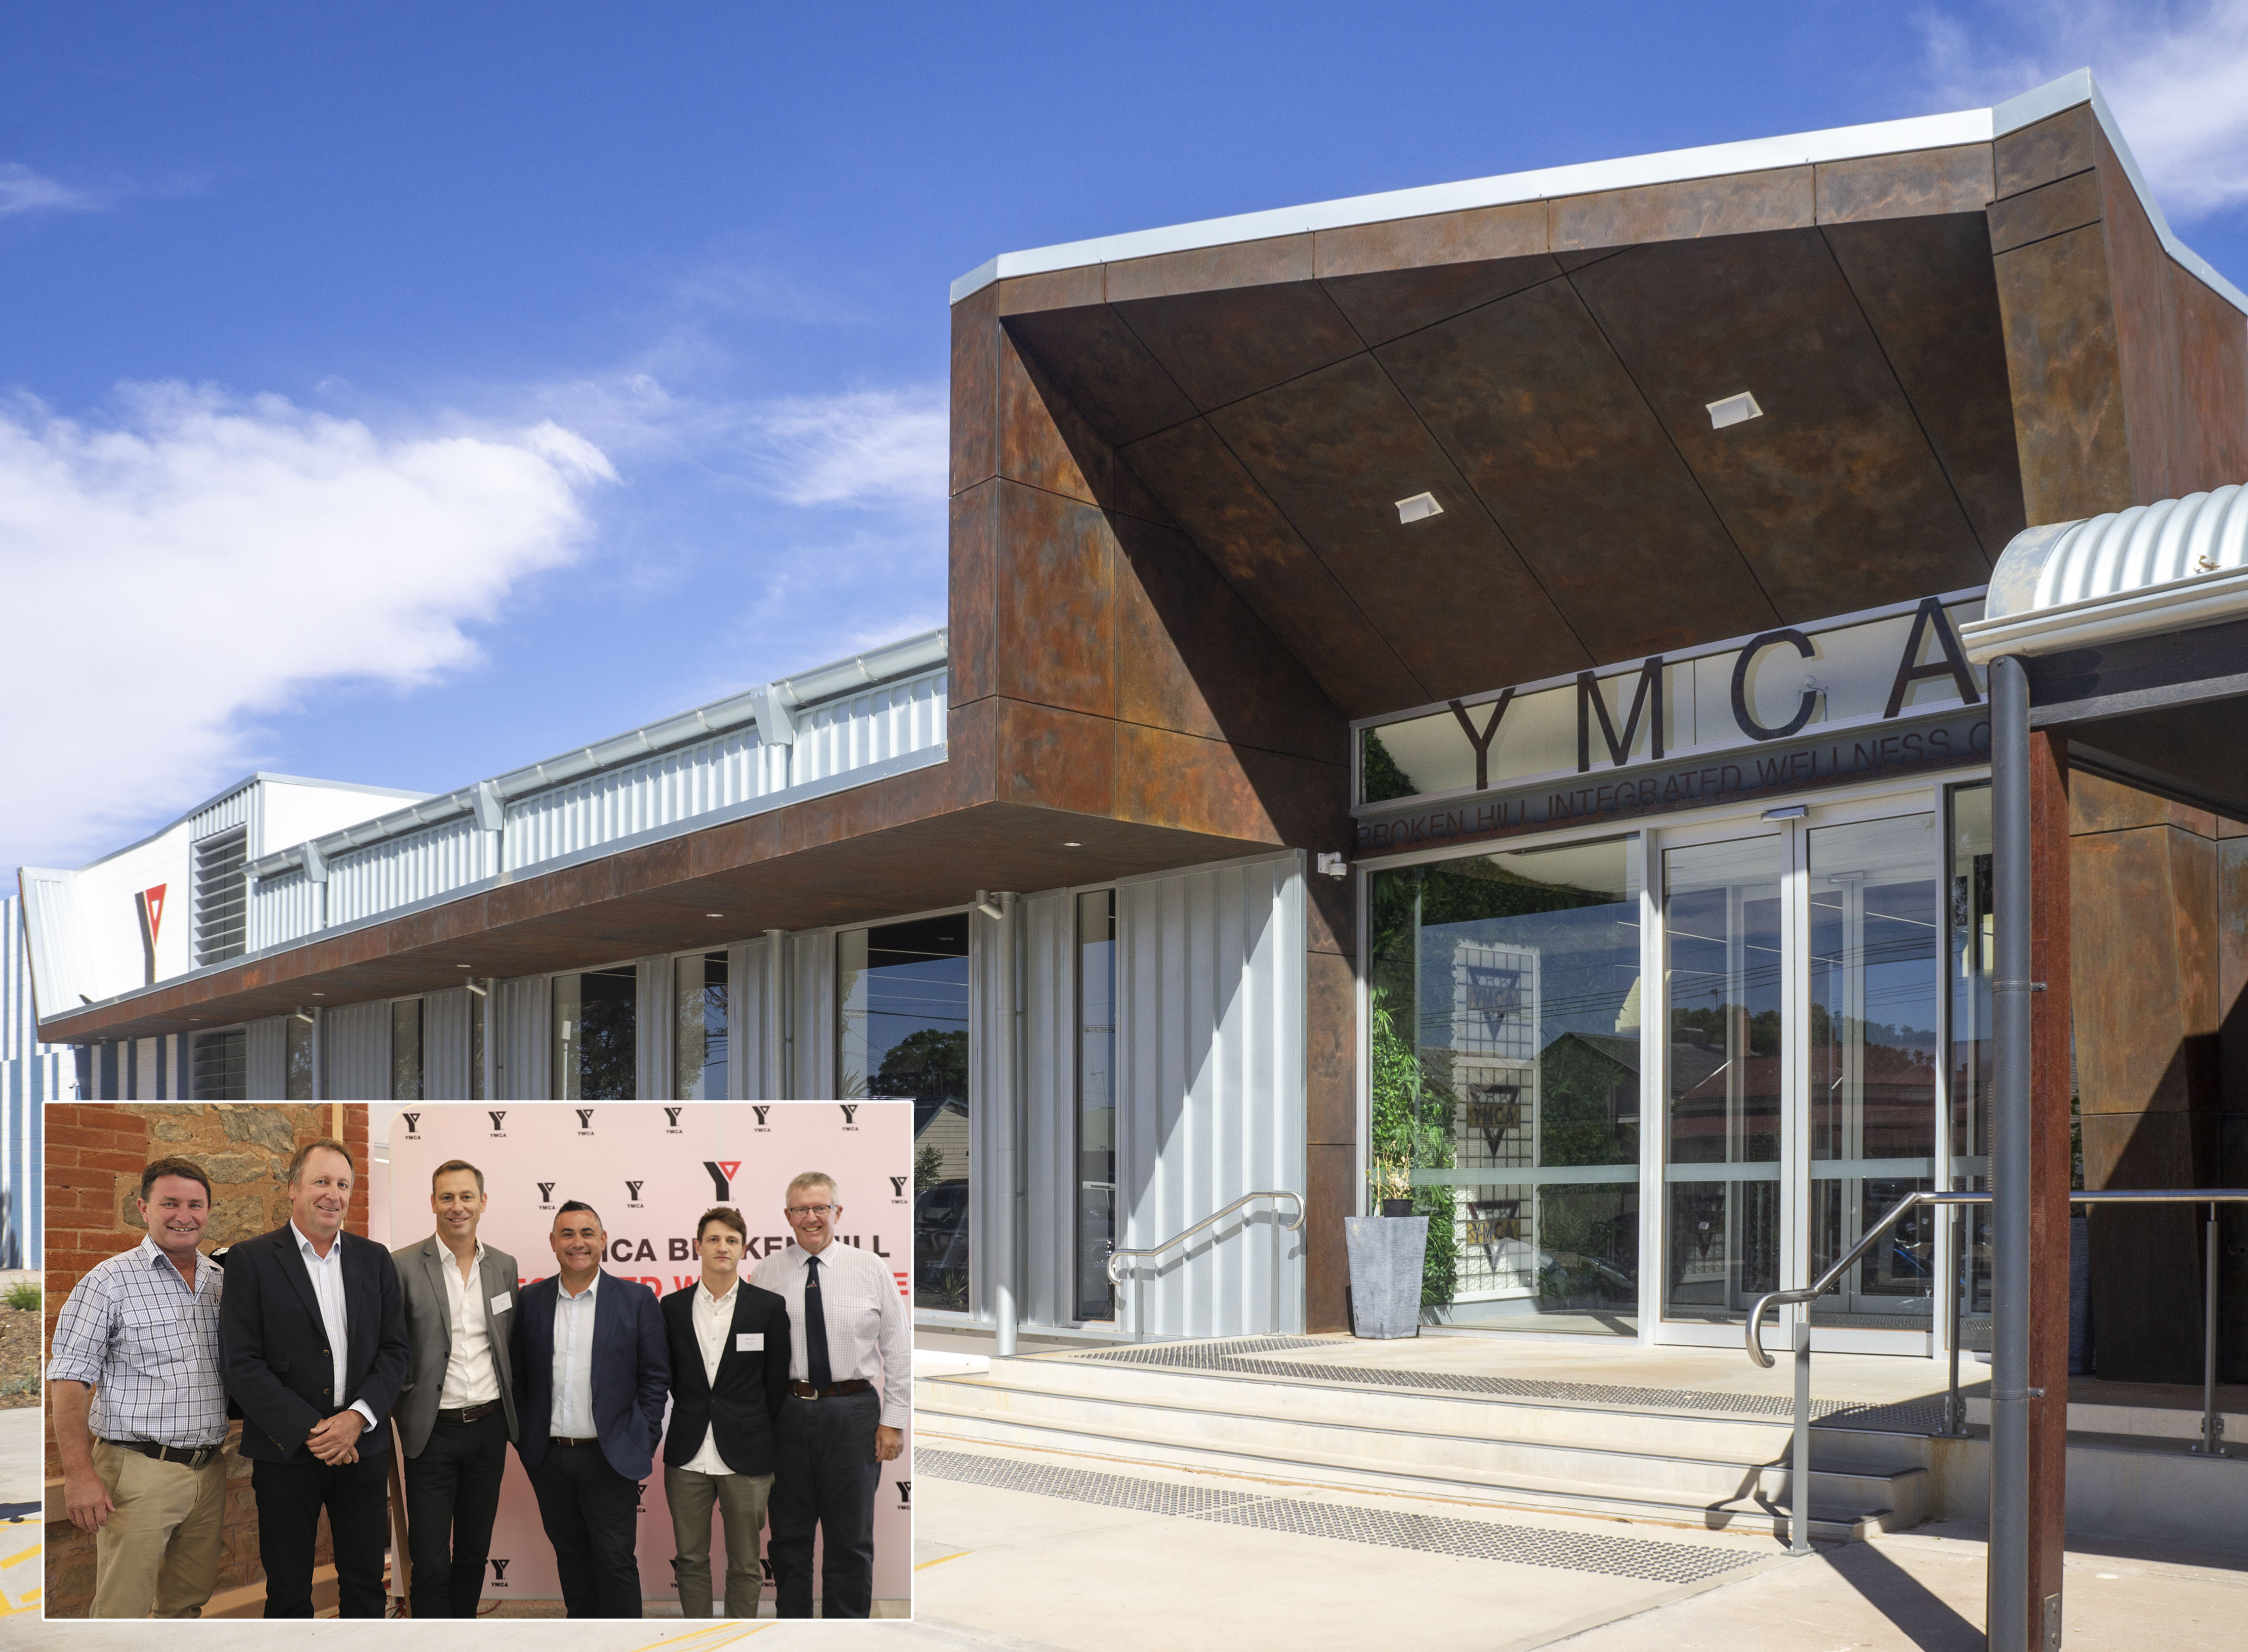 YMCA opens new Integrated Wellness Centre in Broken Hill